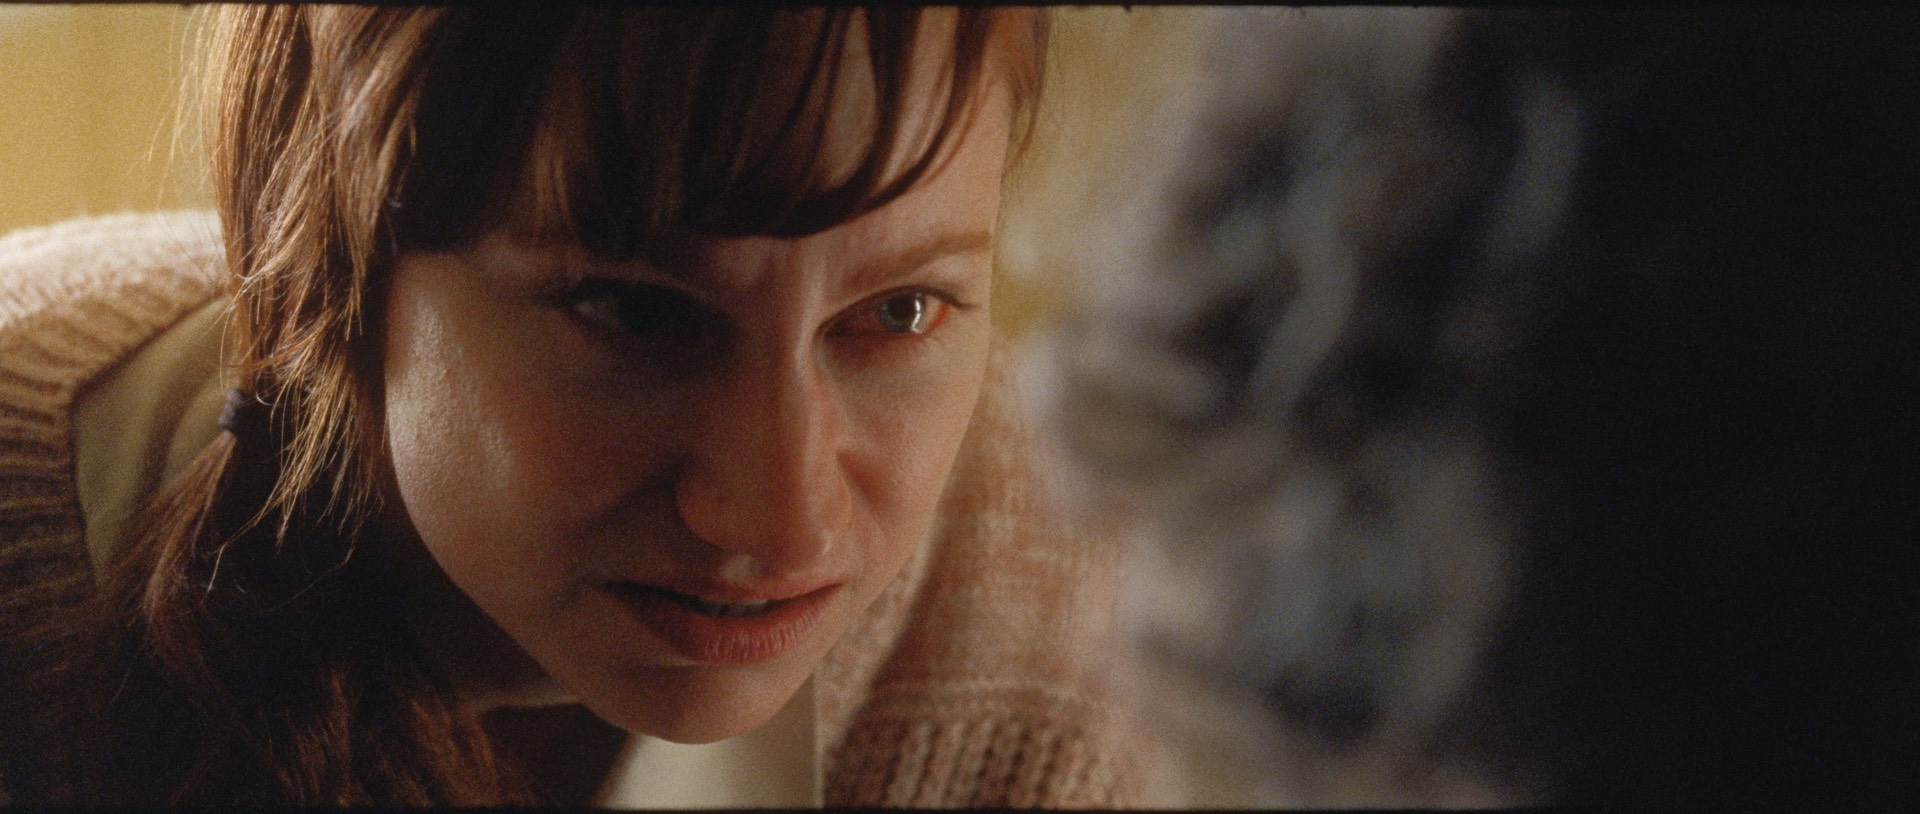 Still image from the short film Chicken. Colorist Morgana McKenzie